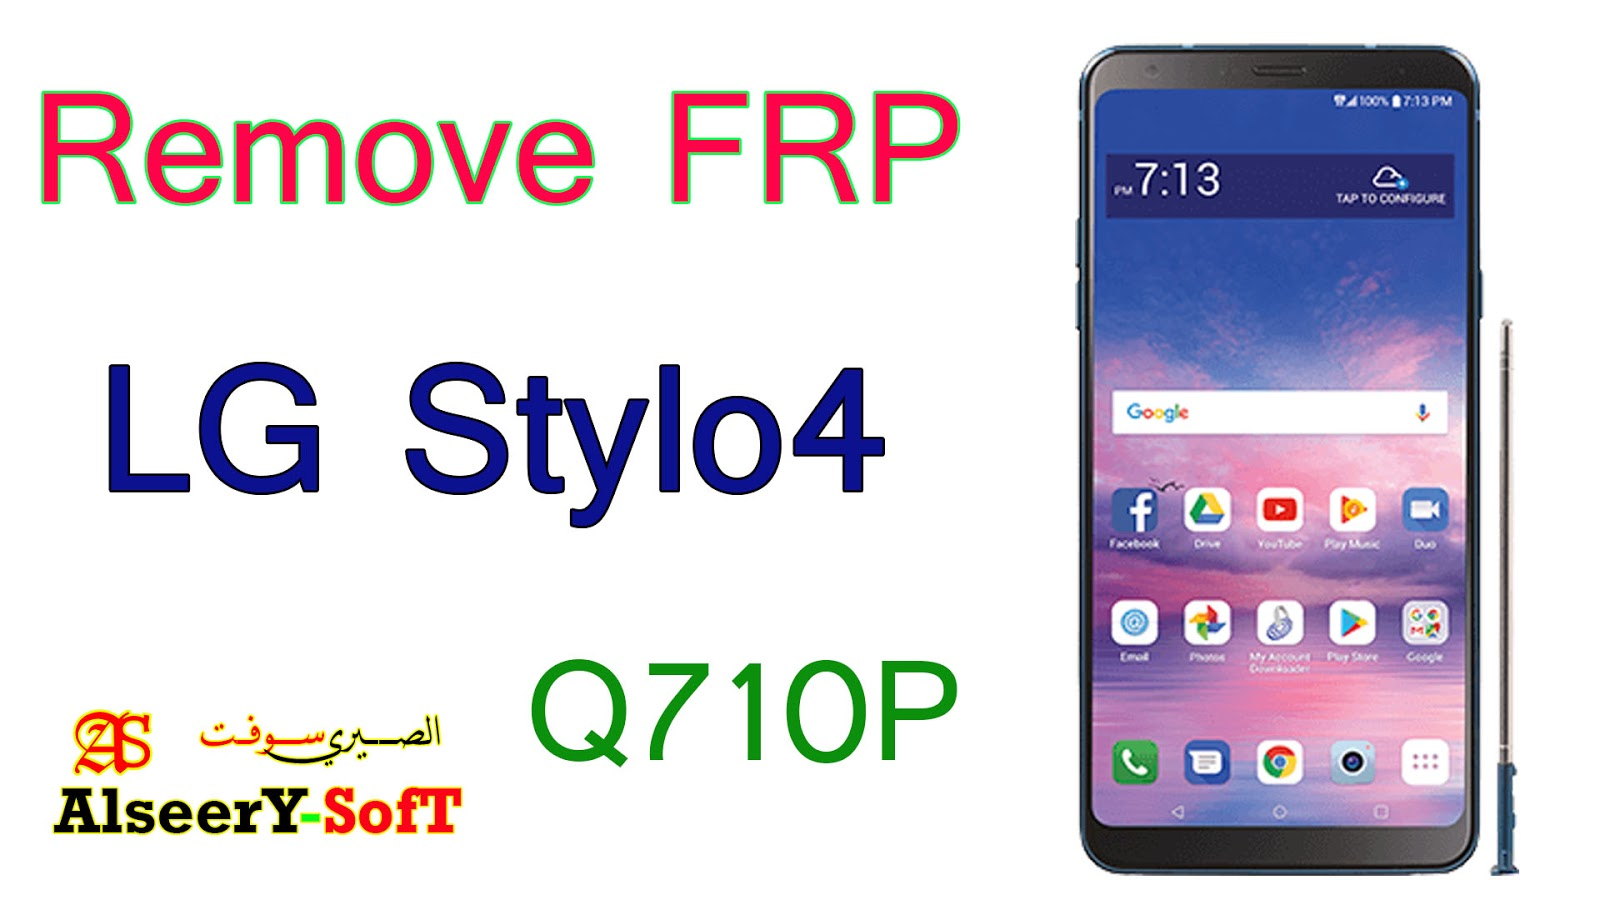 Bypass FRP LG Stylo4 Q710P/Google Account - AlseerY SofT